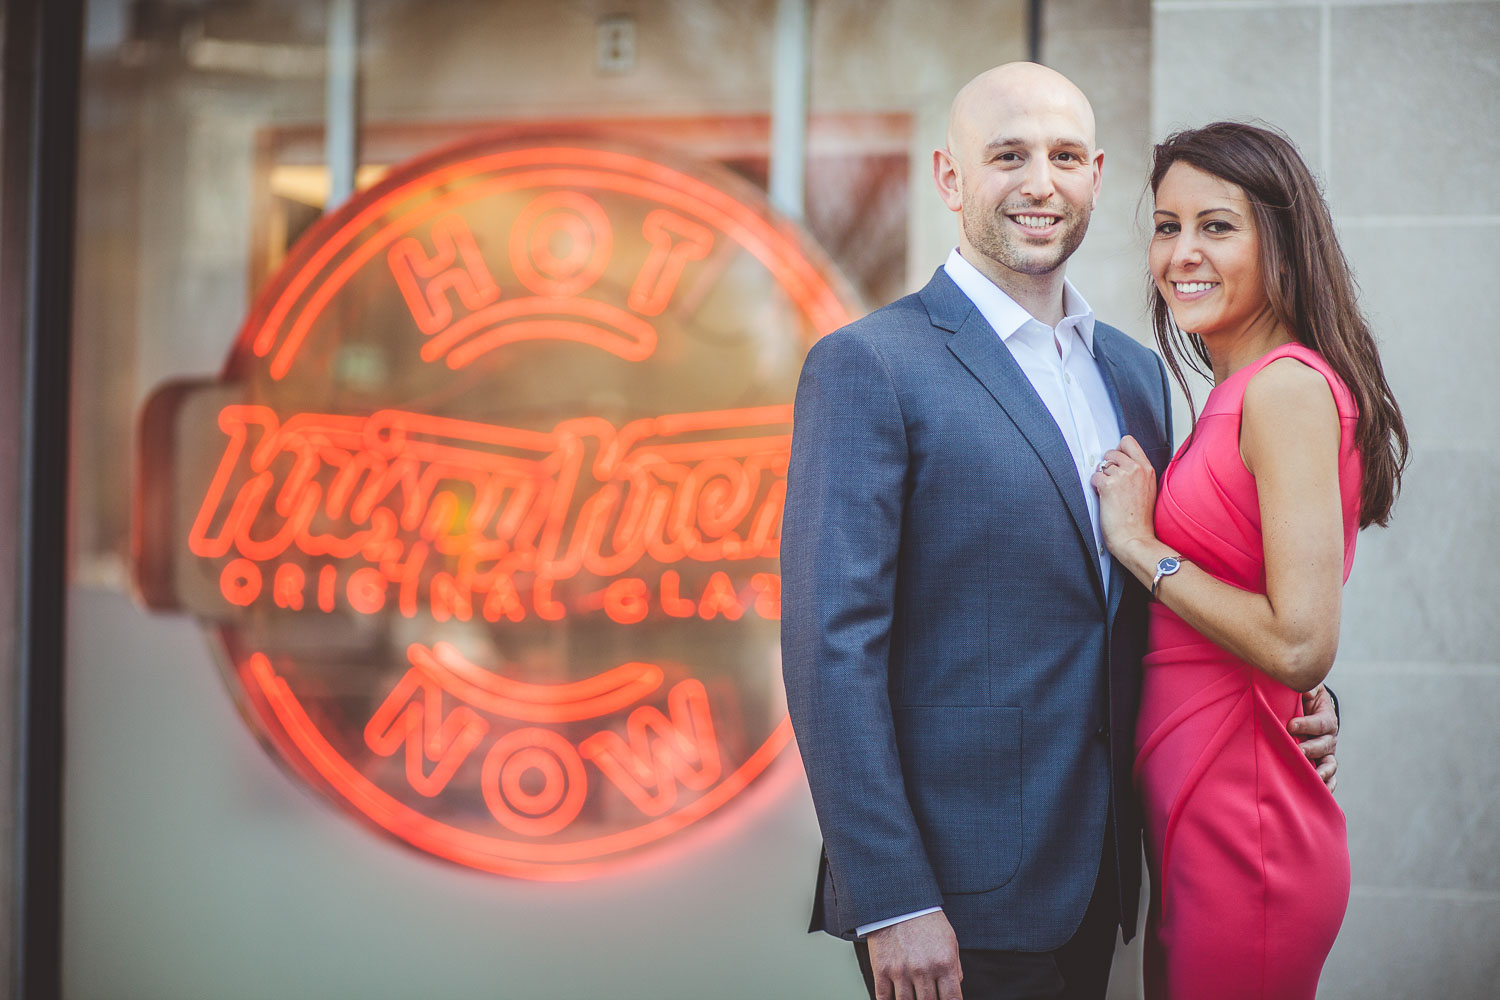 Engaged couple in front of Krispy Kreme sign at Dupont Circle in DC.